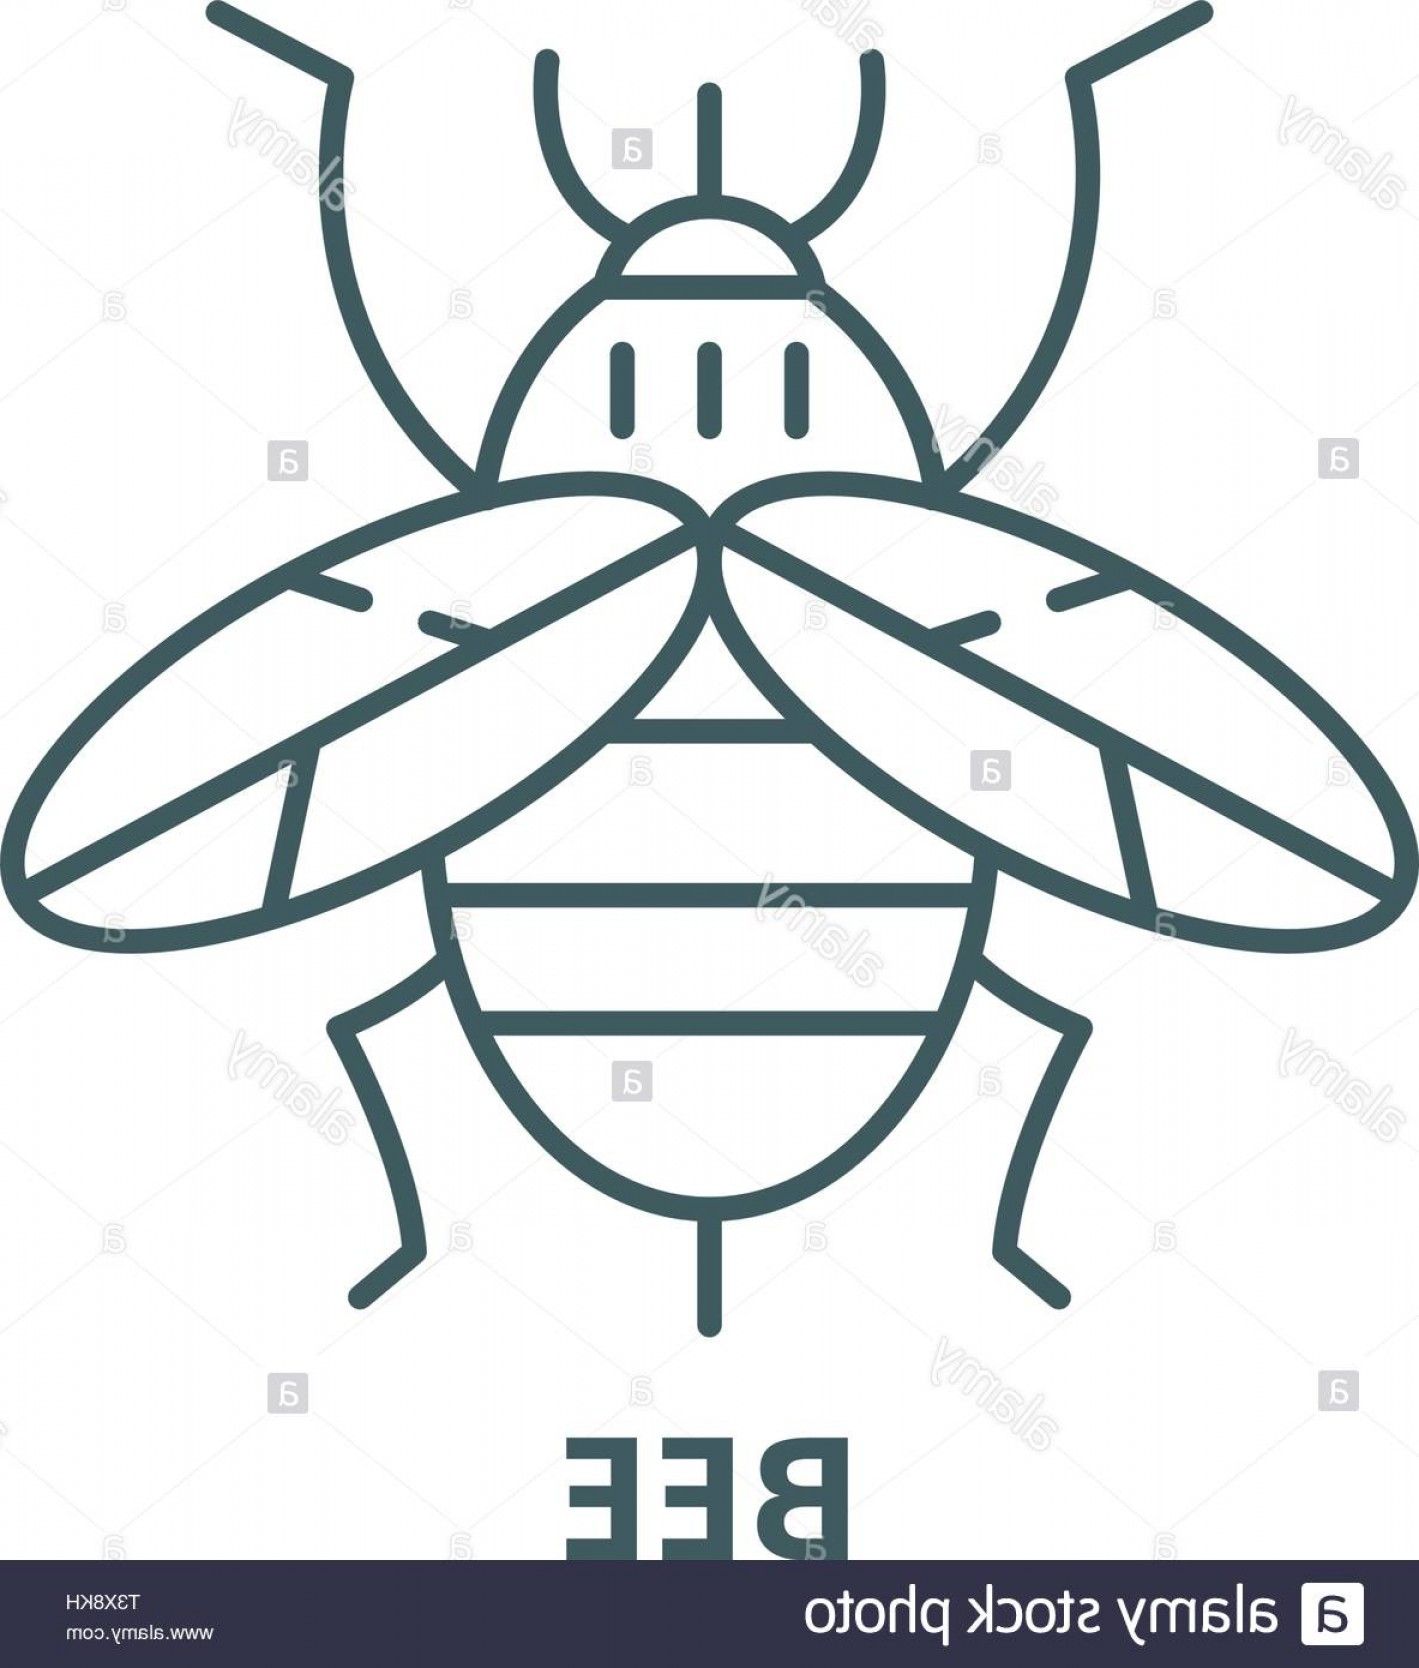 Bee Outline Vector: Bee Line Icon Vector Bee Outline Sign Concept Symbol Flat Illustration Image